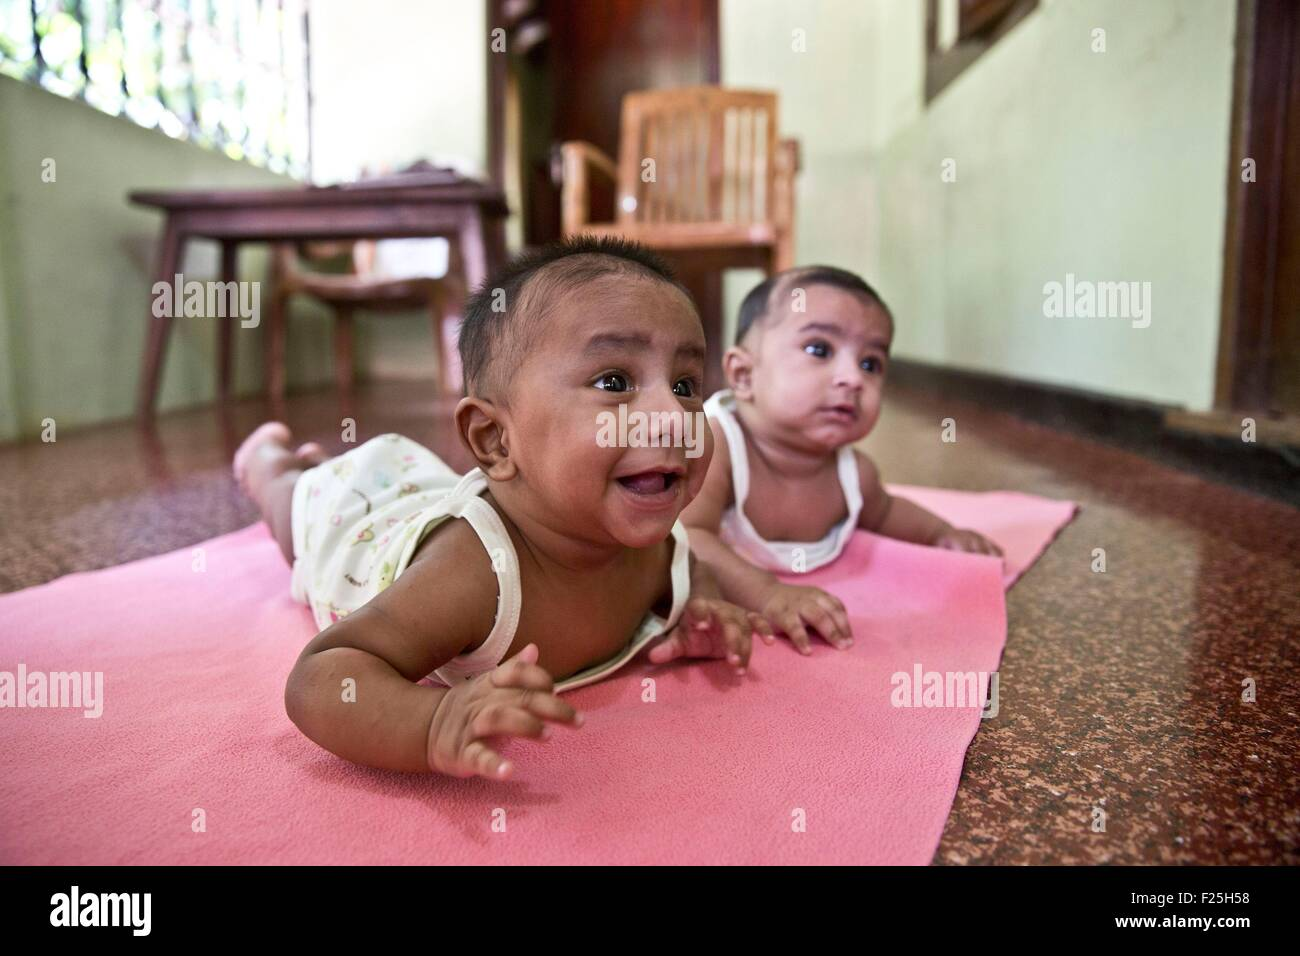 India kerala kodinhi twins town stock image